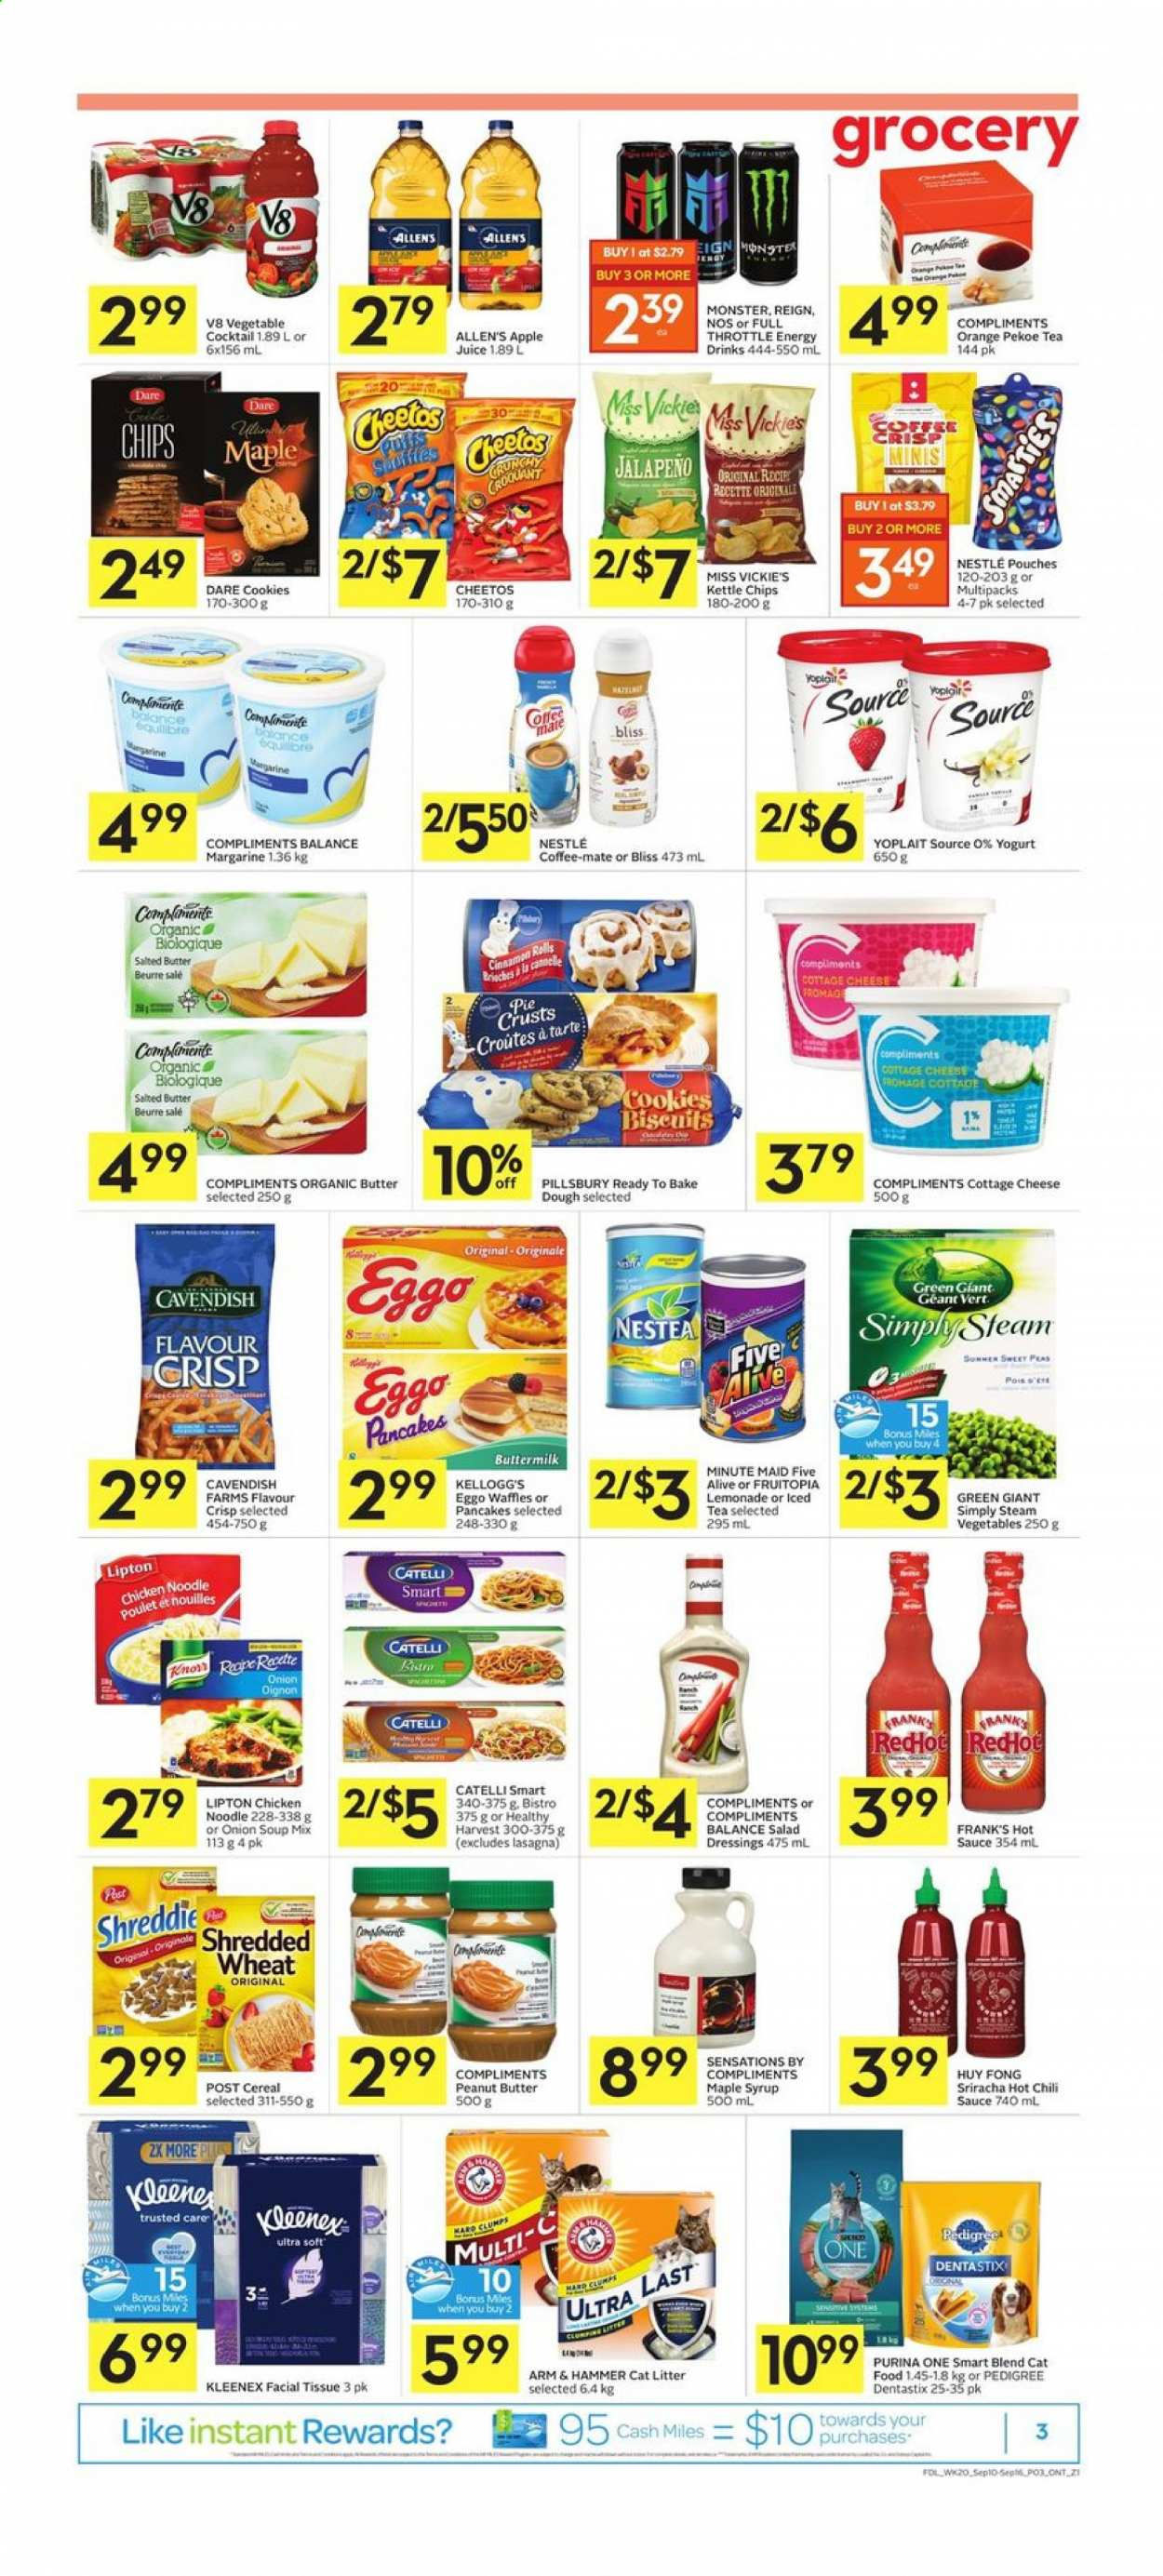 Foodland Flyer - September 10, 2020 - September 16, 2020 - Sales products - animal food, apple juice, arm & hammer, butter, buttermilk, cat food, cat litter, cereals, coffee-mate, cookies, cottage cheese, kleenex, lemonade, litter, maple syrup, margarine, mate, nestlé, sriracha, tea, yogurt, hot sauce, pie crust, purina, cheetos, chicken, pancakes, peanut butter, peanuts, peas, noodle, onion soup, onion, organic, chili sauce, chips, cheese, juice, pie, soup mix, soup, vegetable, iced tea, hammer, cereal, monster, lipton, salad, sauce, poulet, tarte, beurre, cannelle, fromage, kellogg's, nouilles, orange, pedigree, full throttle, vegetables, jalapeno, dentastix, kettle, steam, syrup, balance. Page 3.